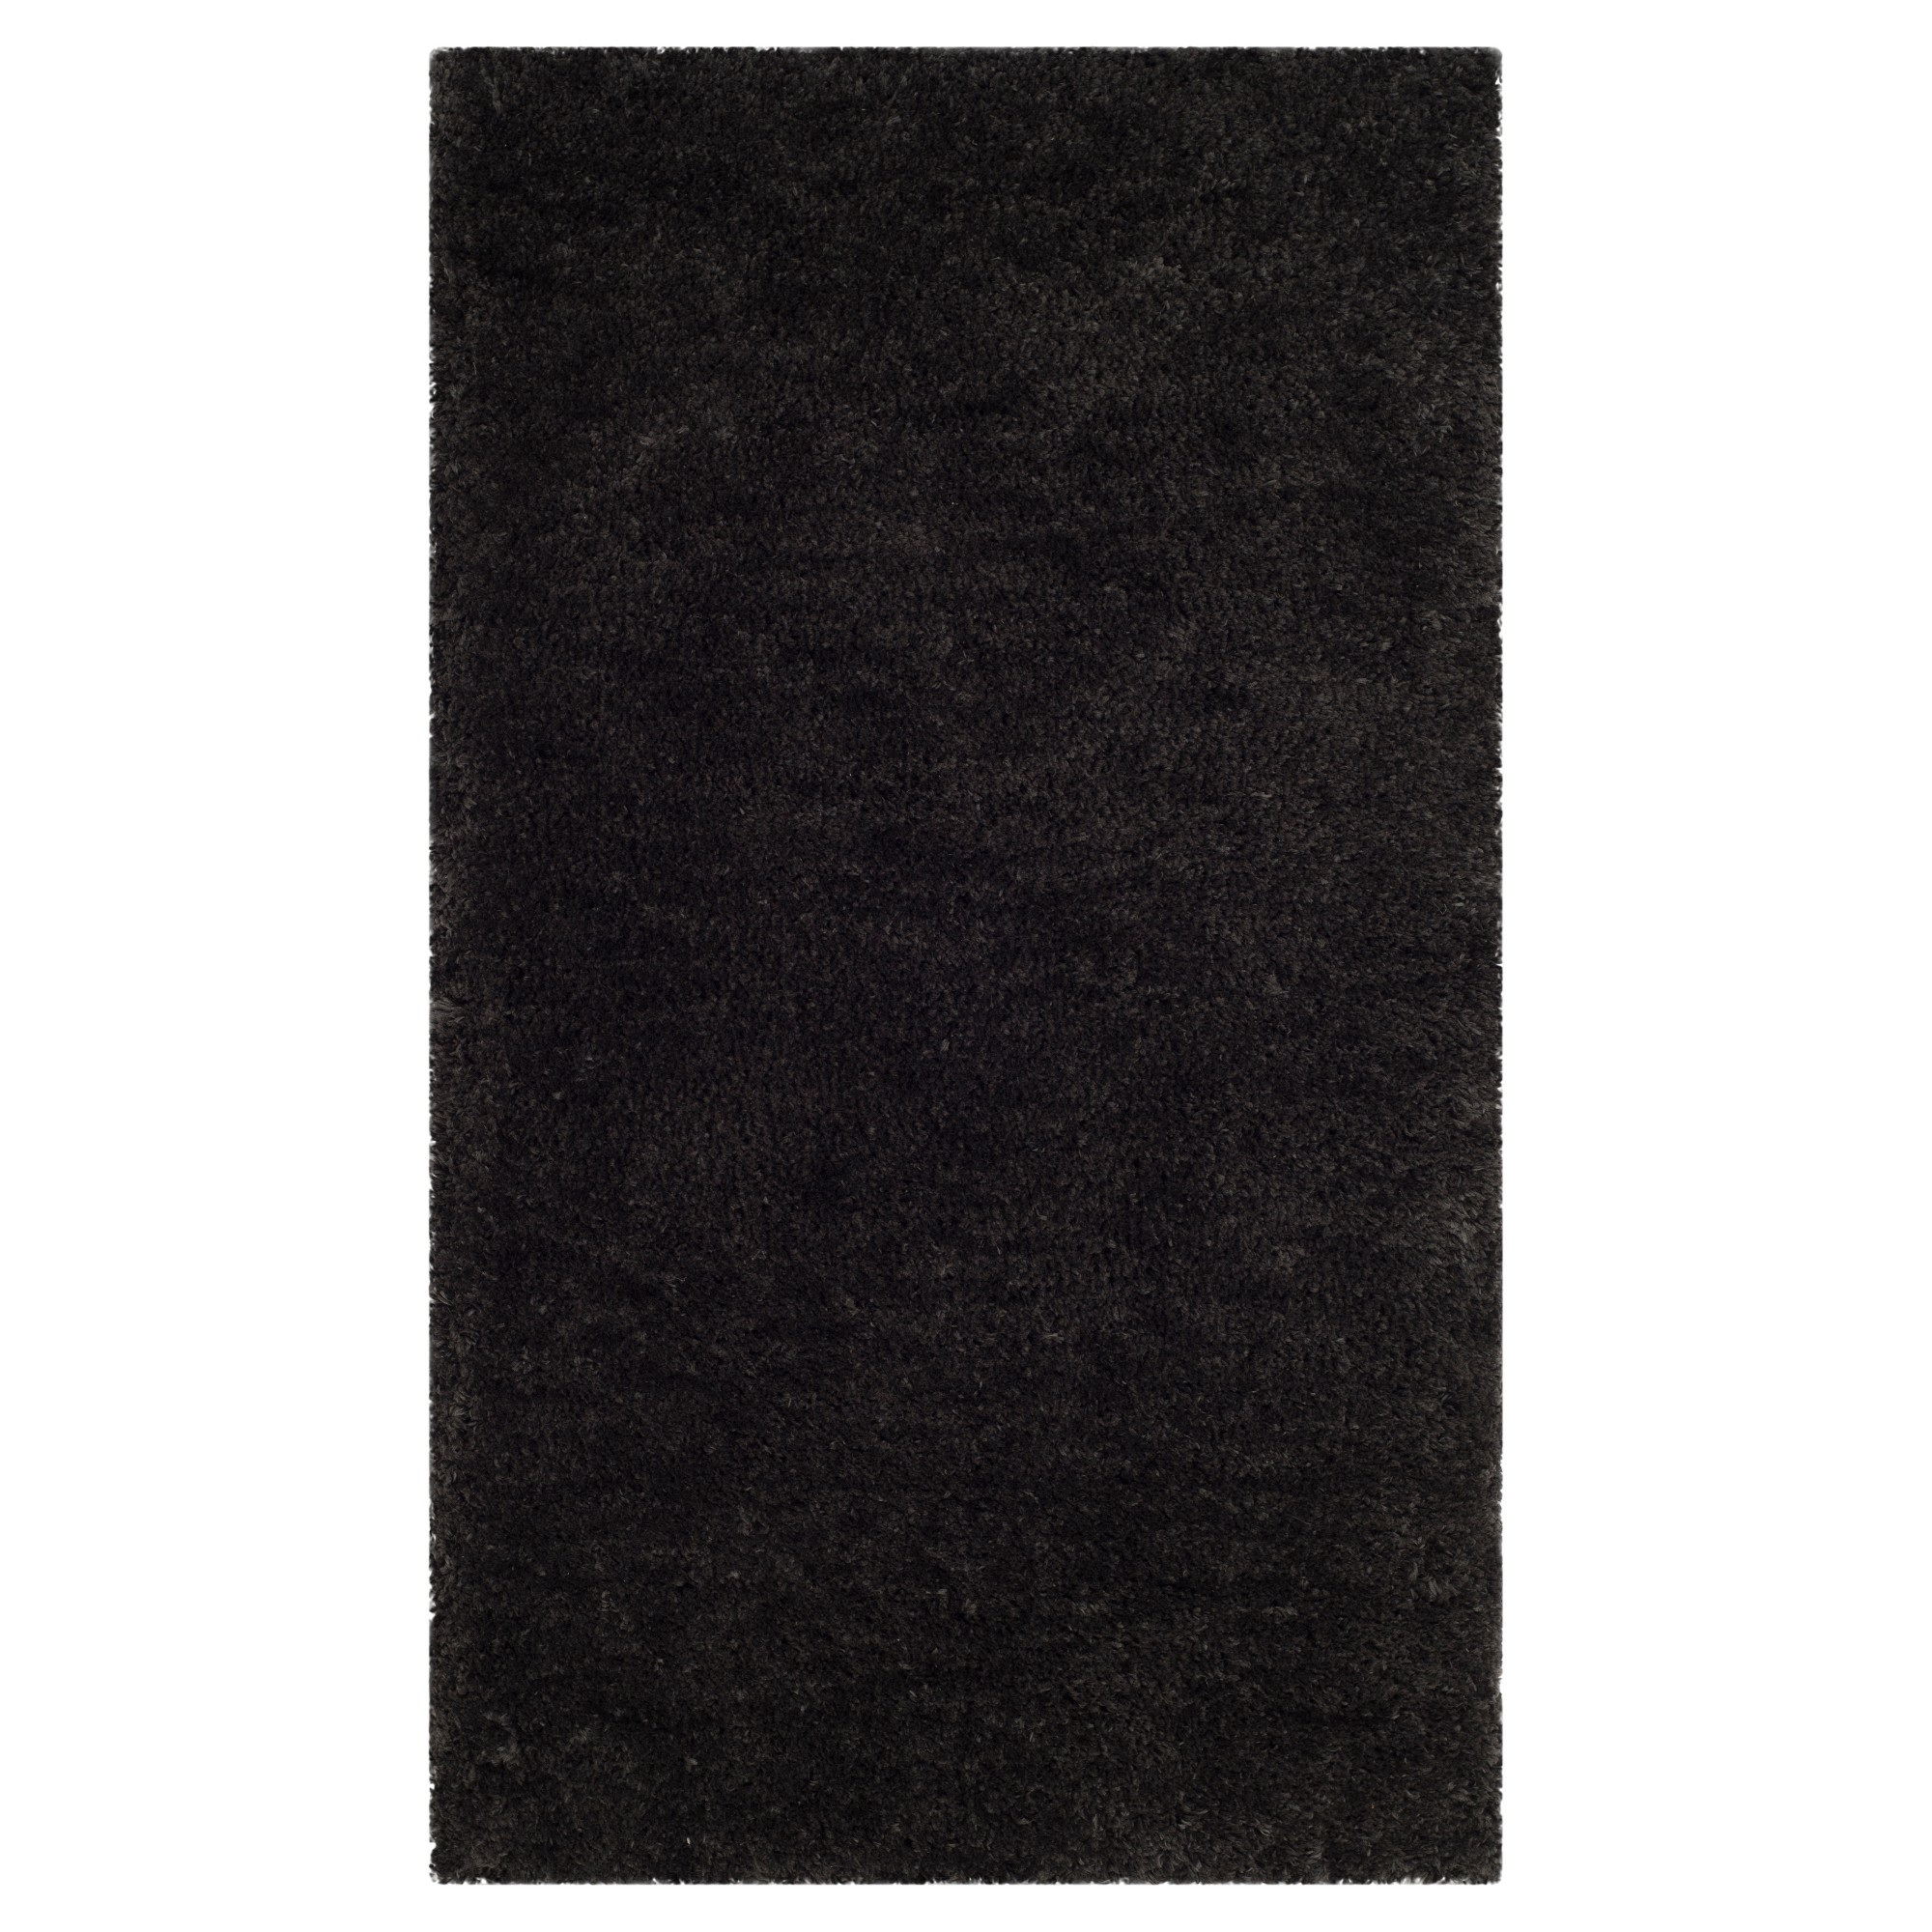 Charcoal Solid Tufted Accent Rug - (3'x5') - Safavieh ...